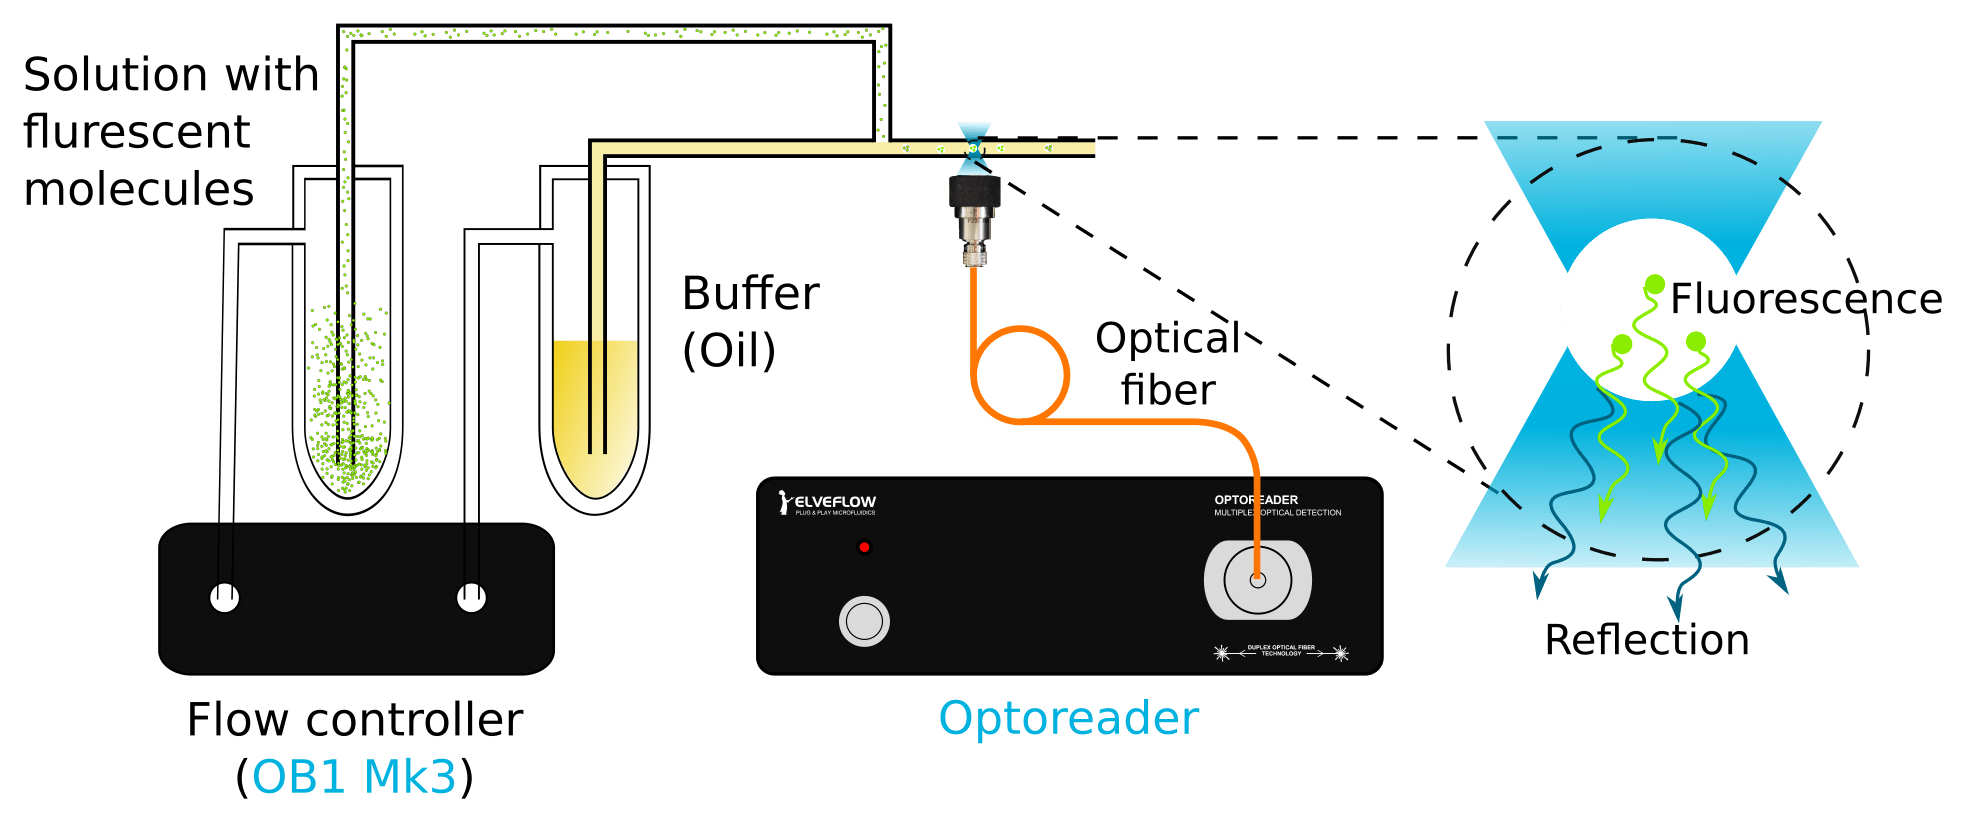 droplet generation fluorescence measurement optoreader Ob1